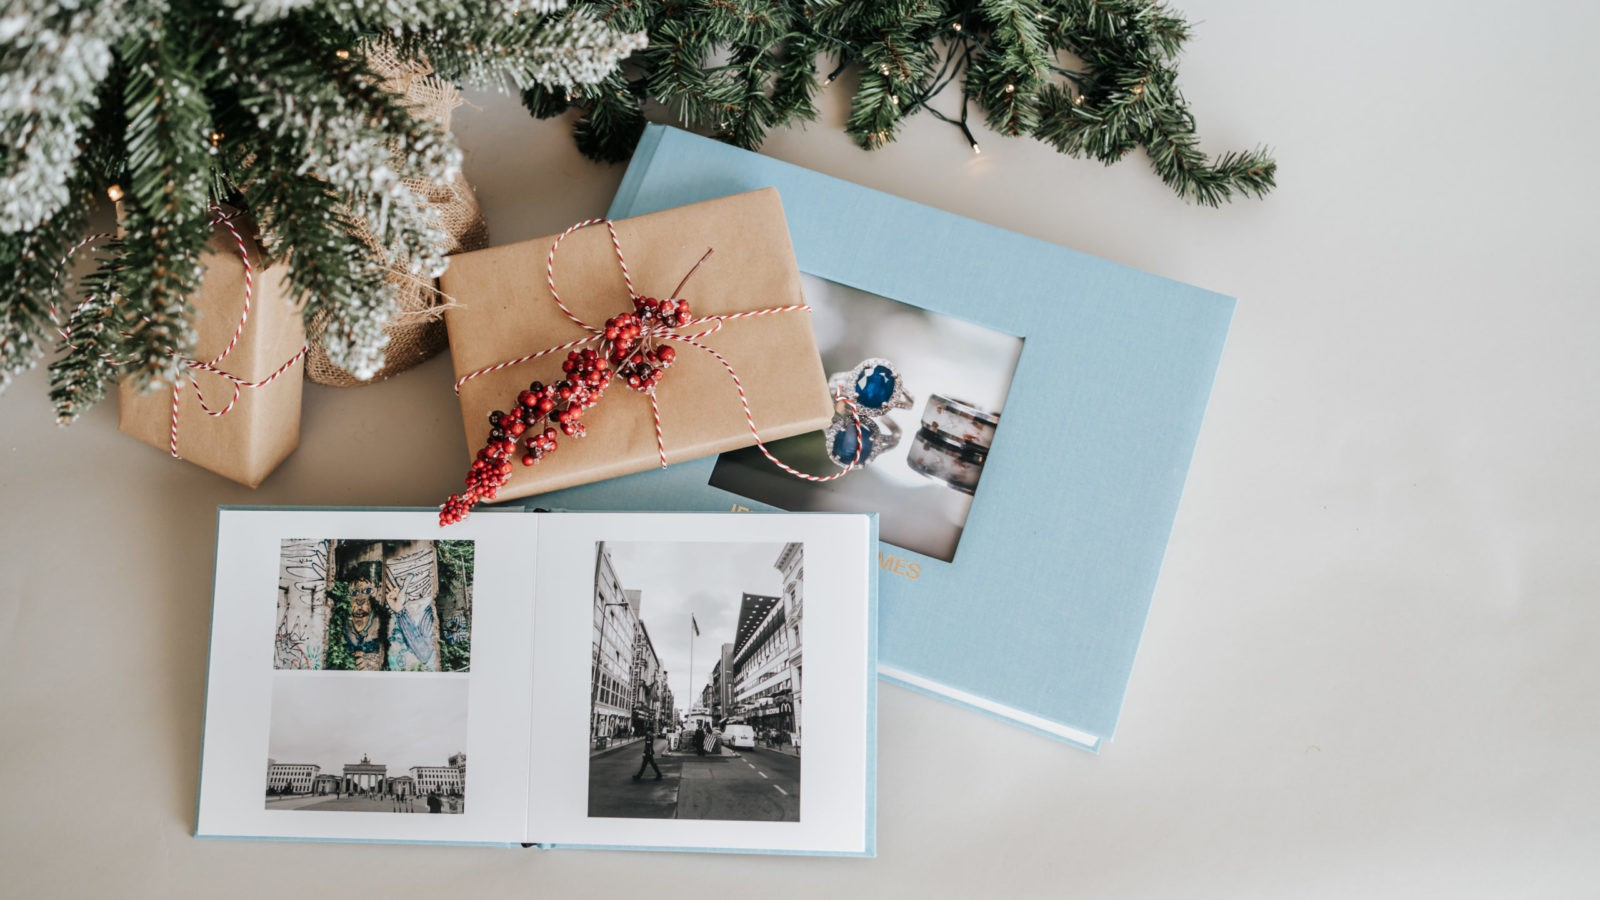 Holiday Gift Planning 101 for Photo Albums